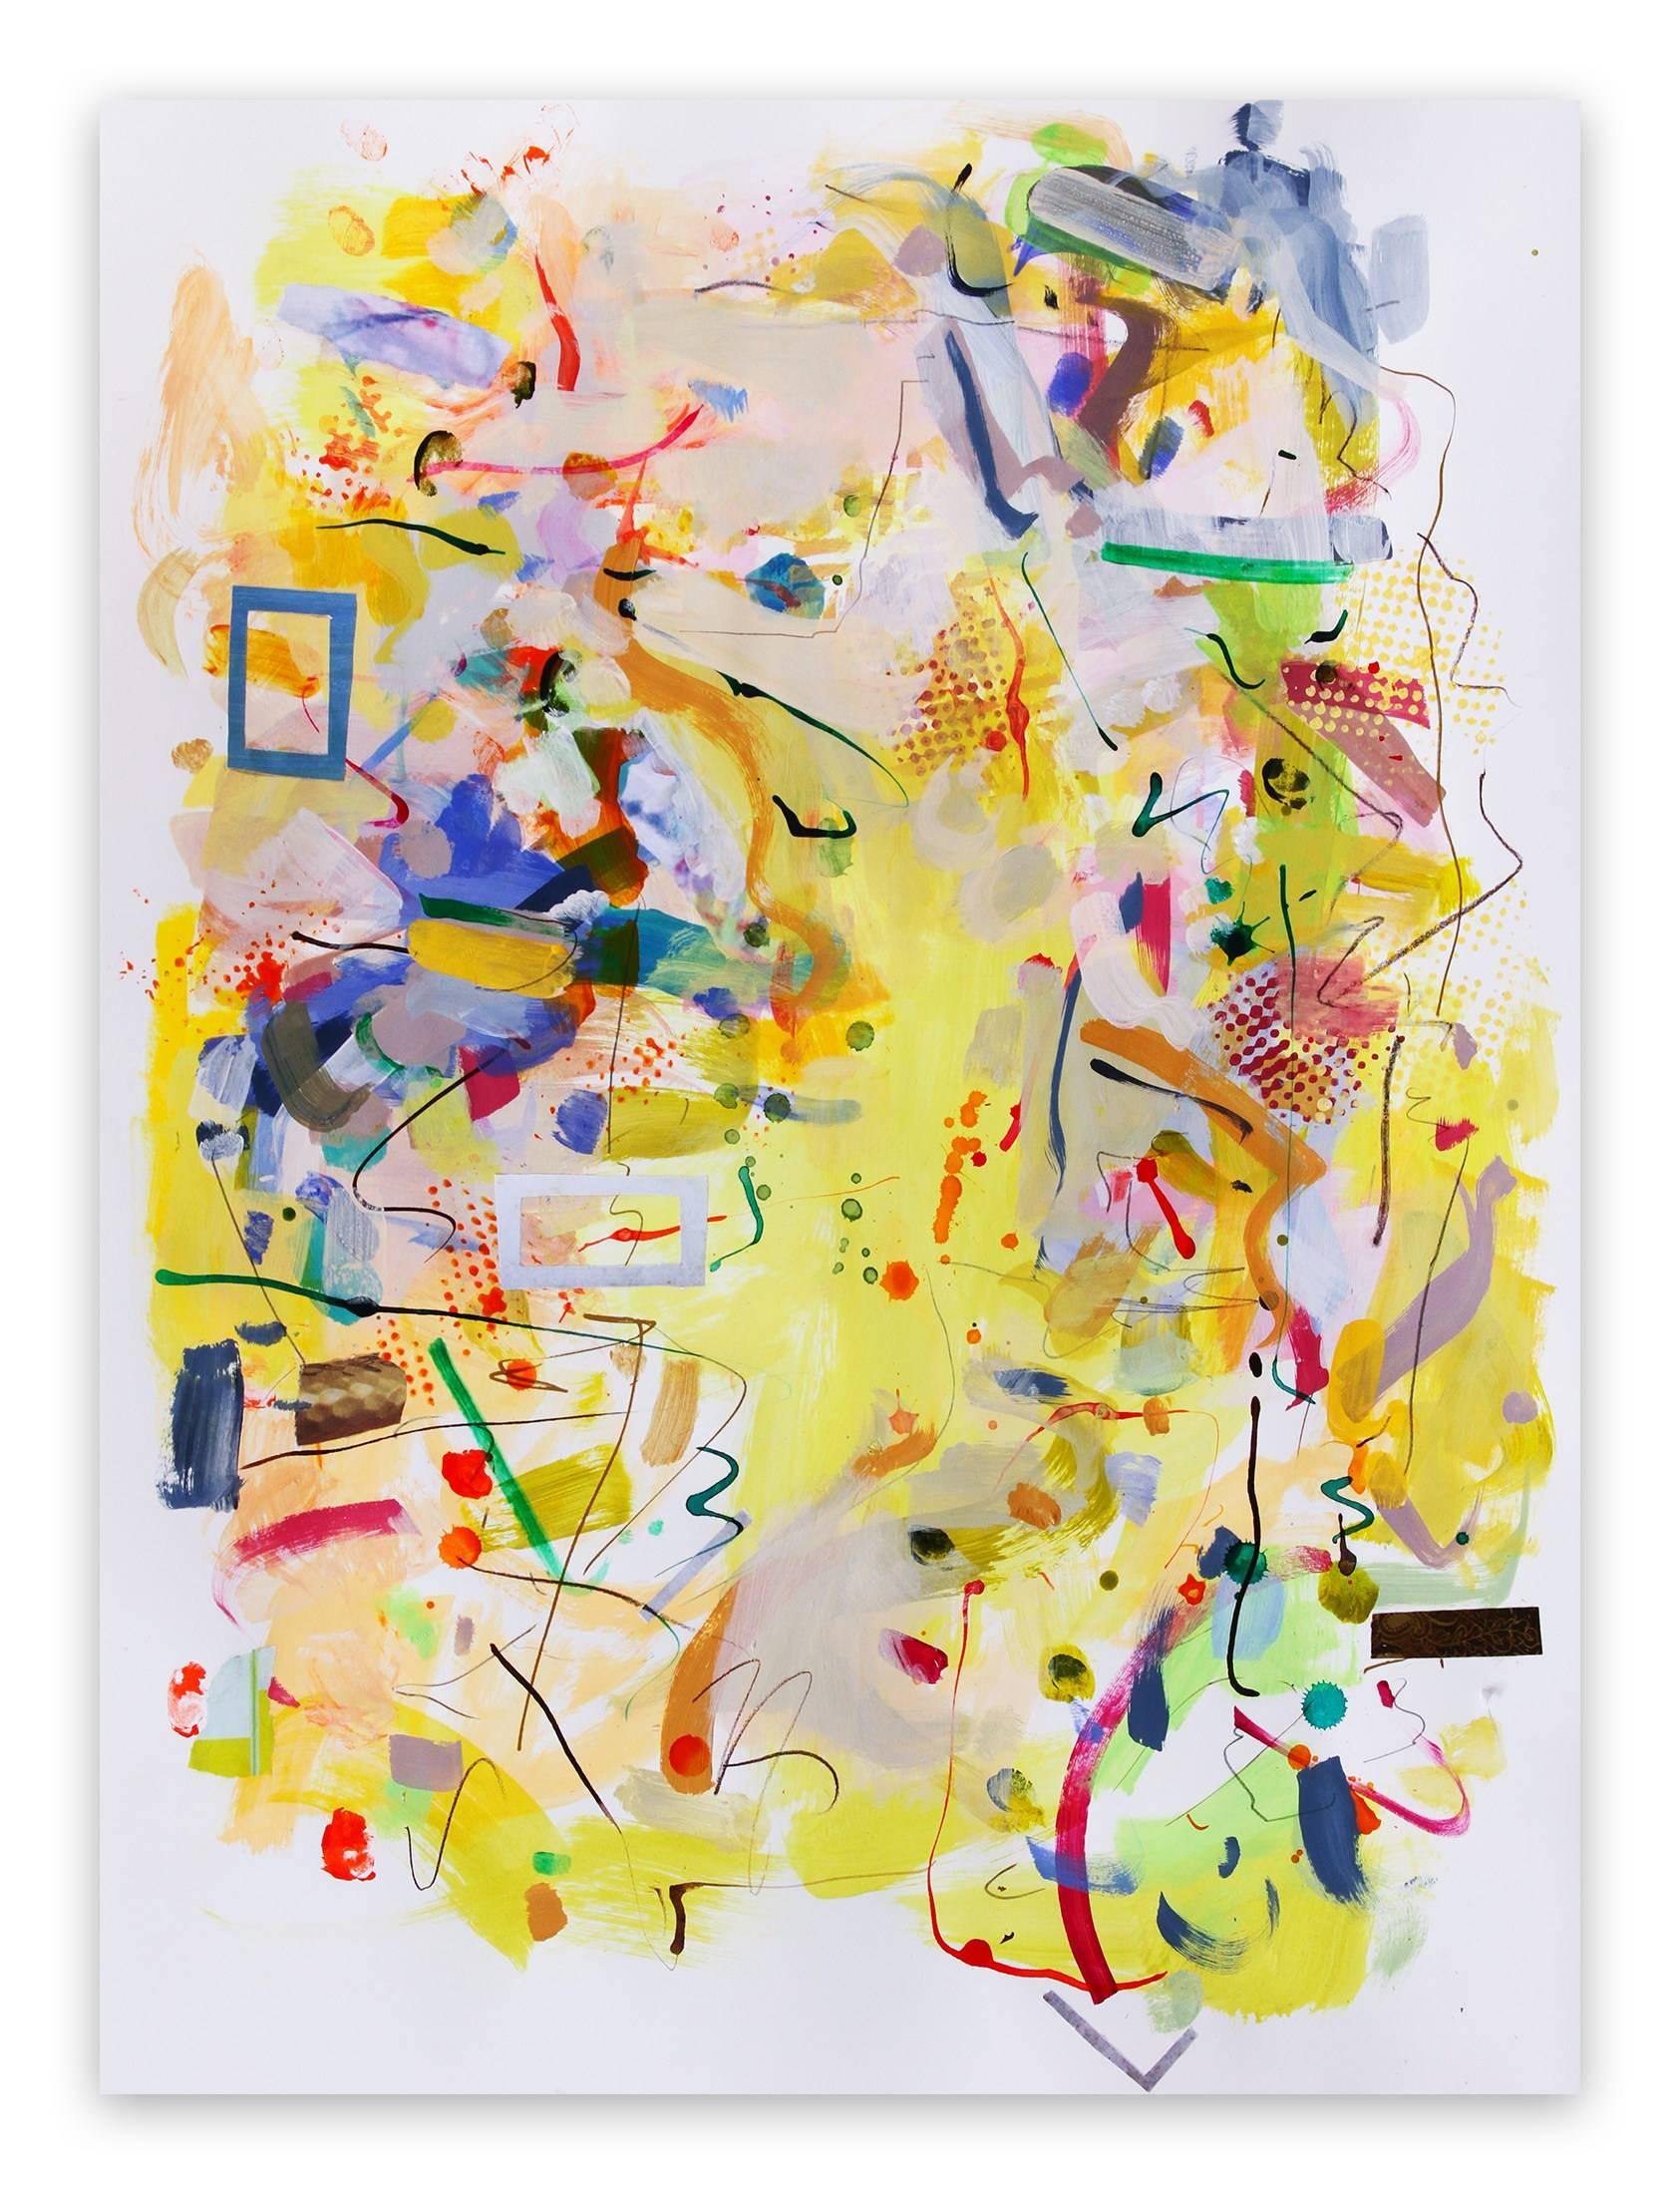 Spring (Abstract Expressionism painting)